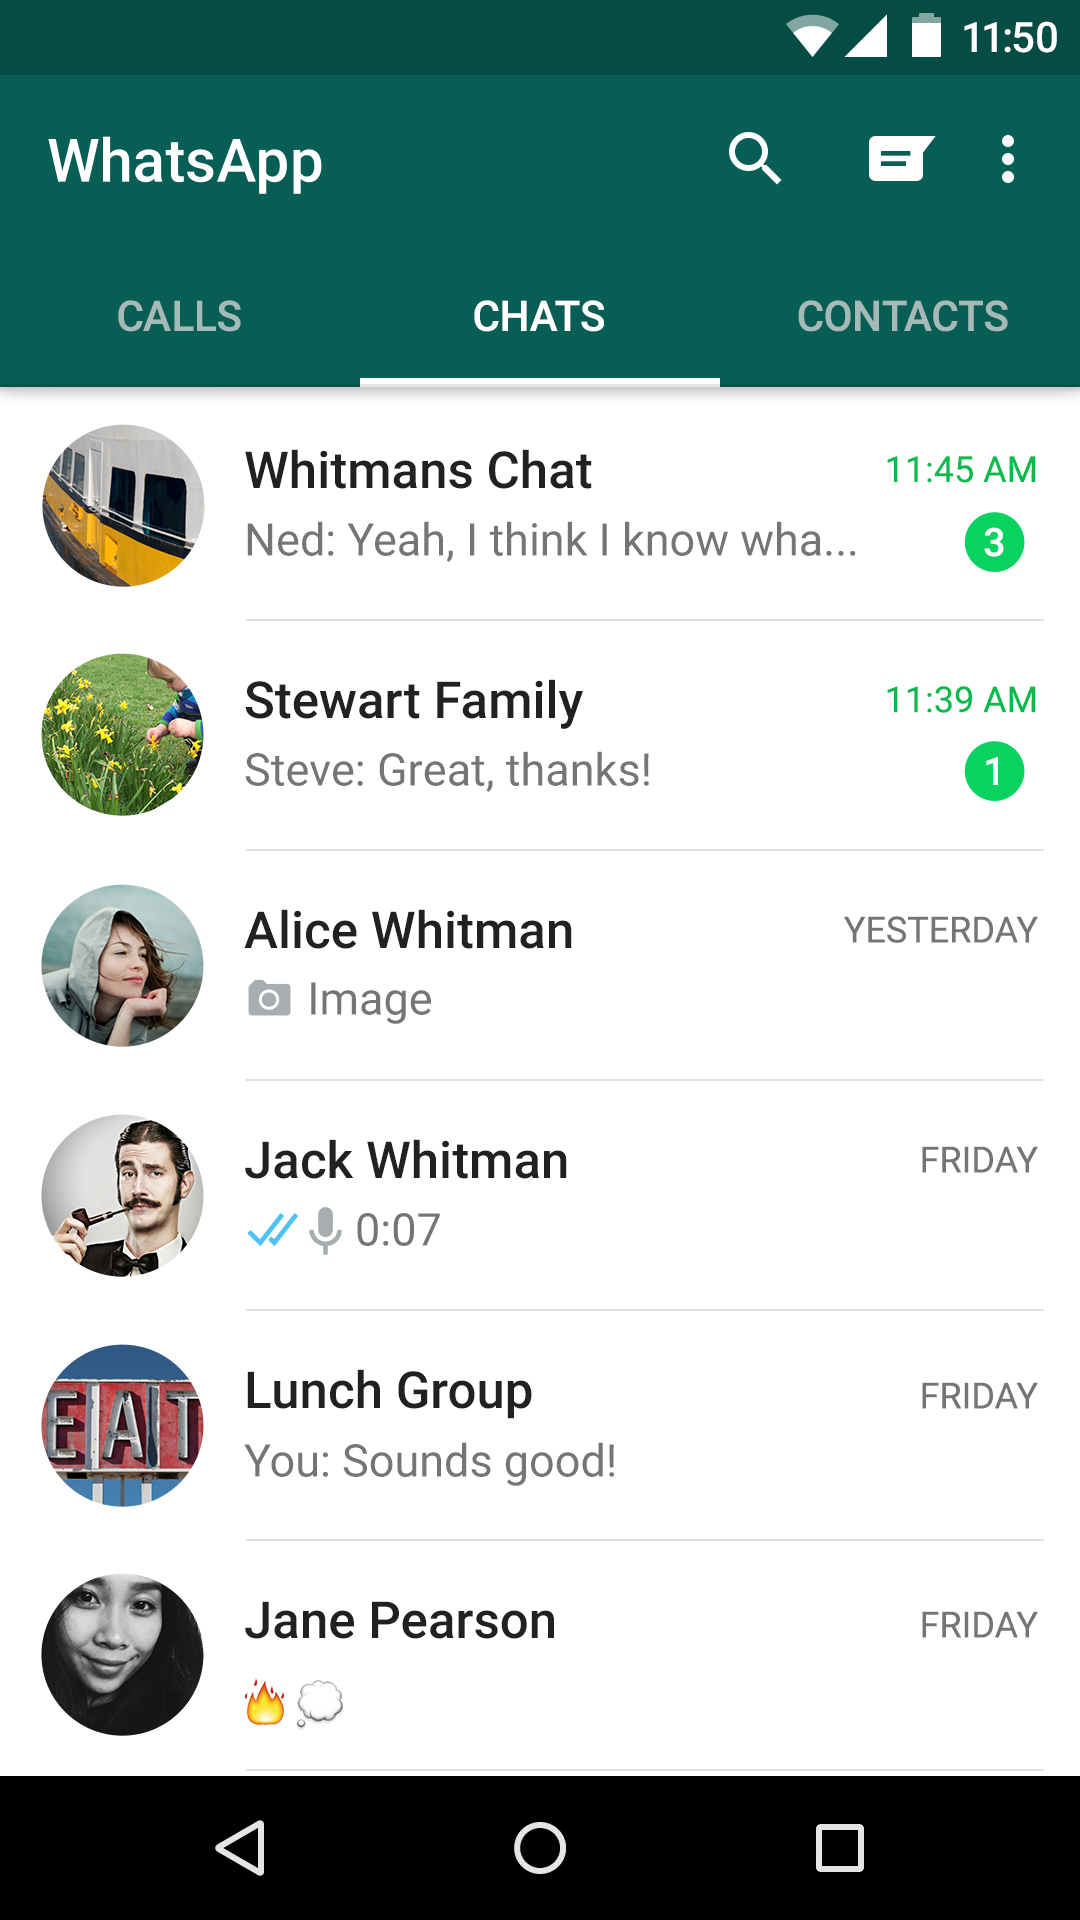 WhatsApp now Support: Get in touch with us! | Powertime